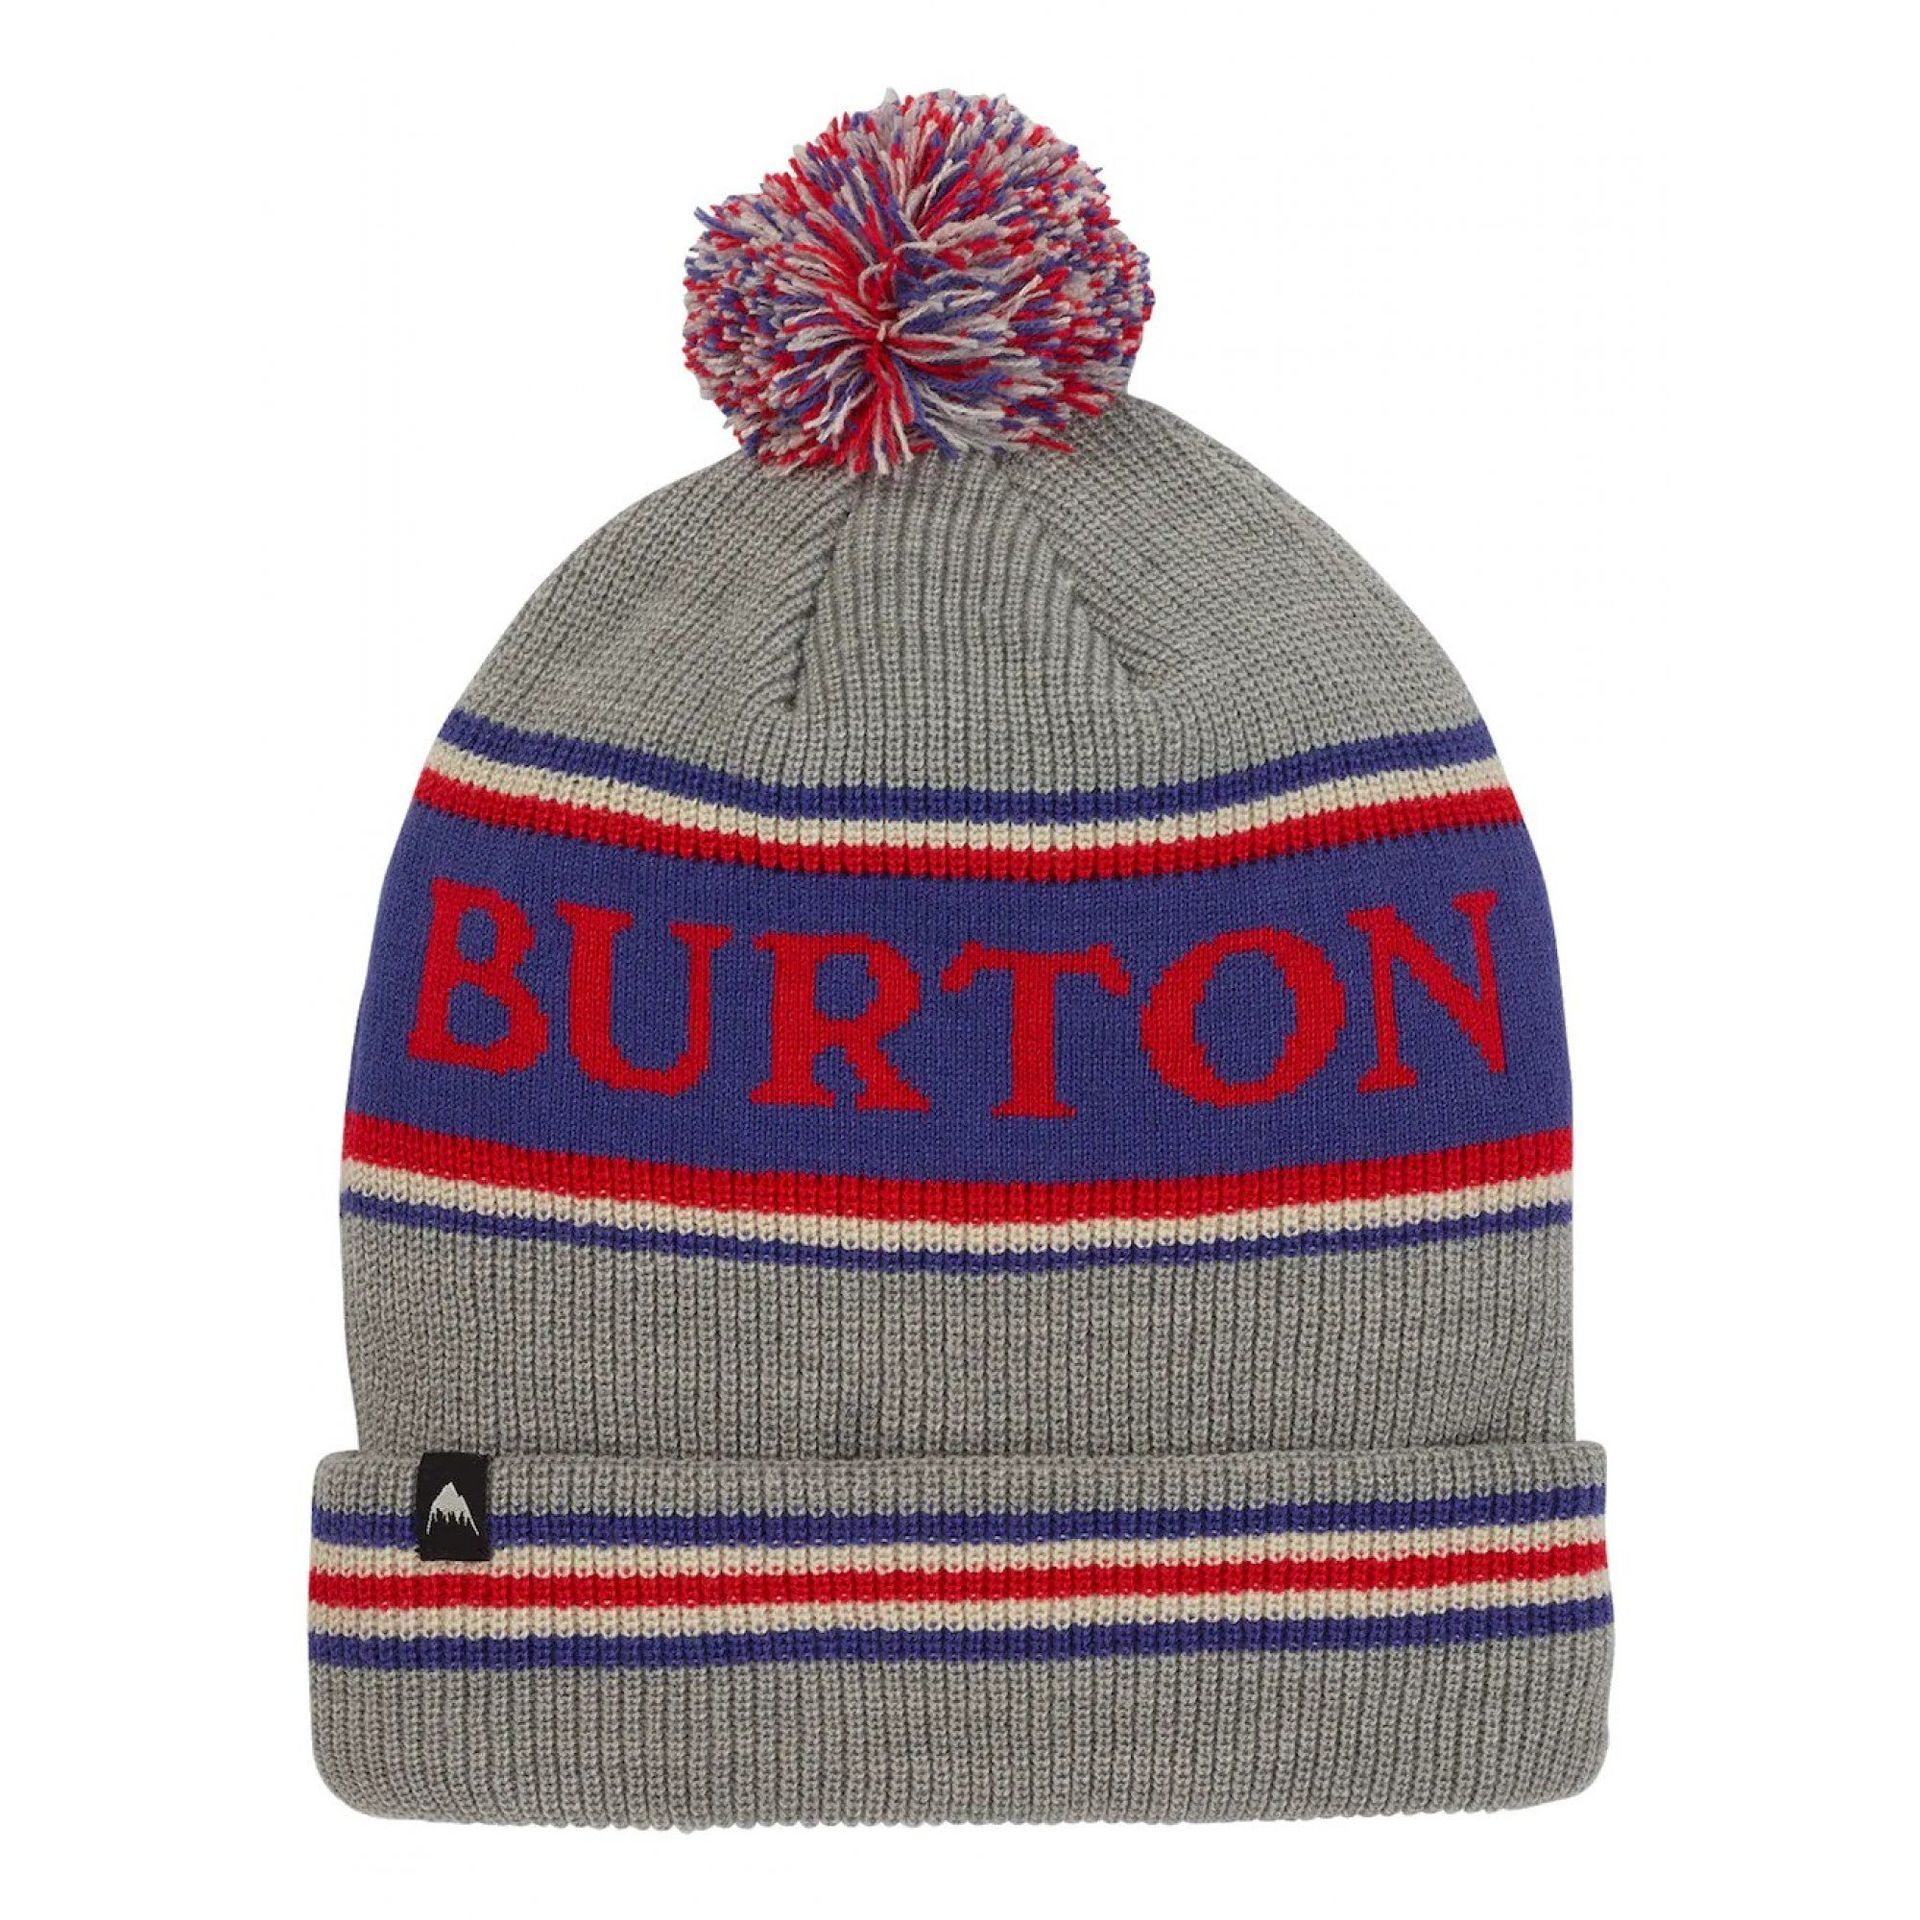 CZAPKA BURTON TROPE GRAY HEATHER 104741 020 1